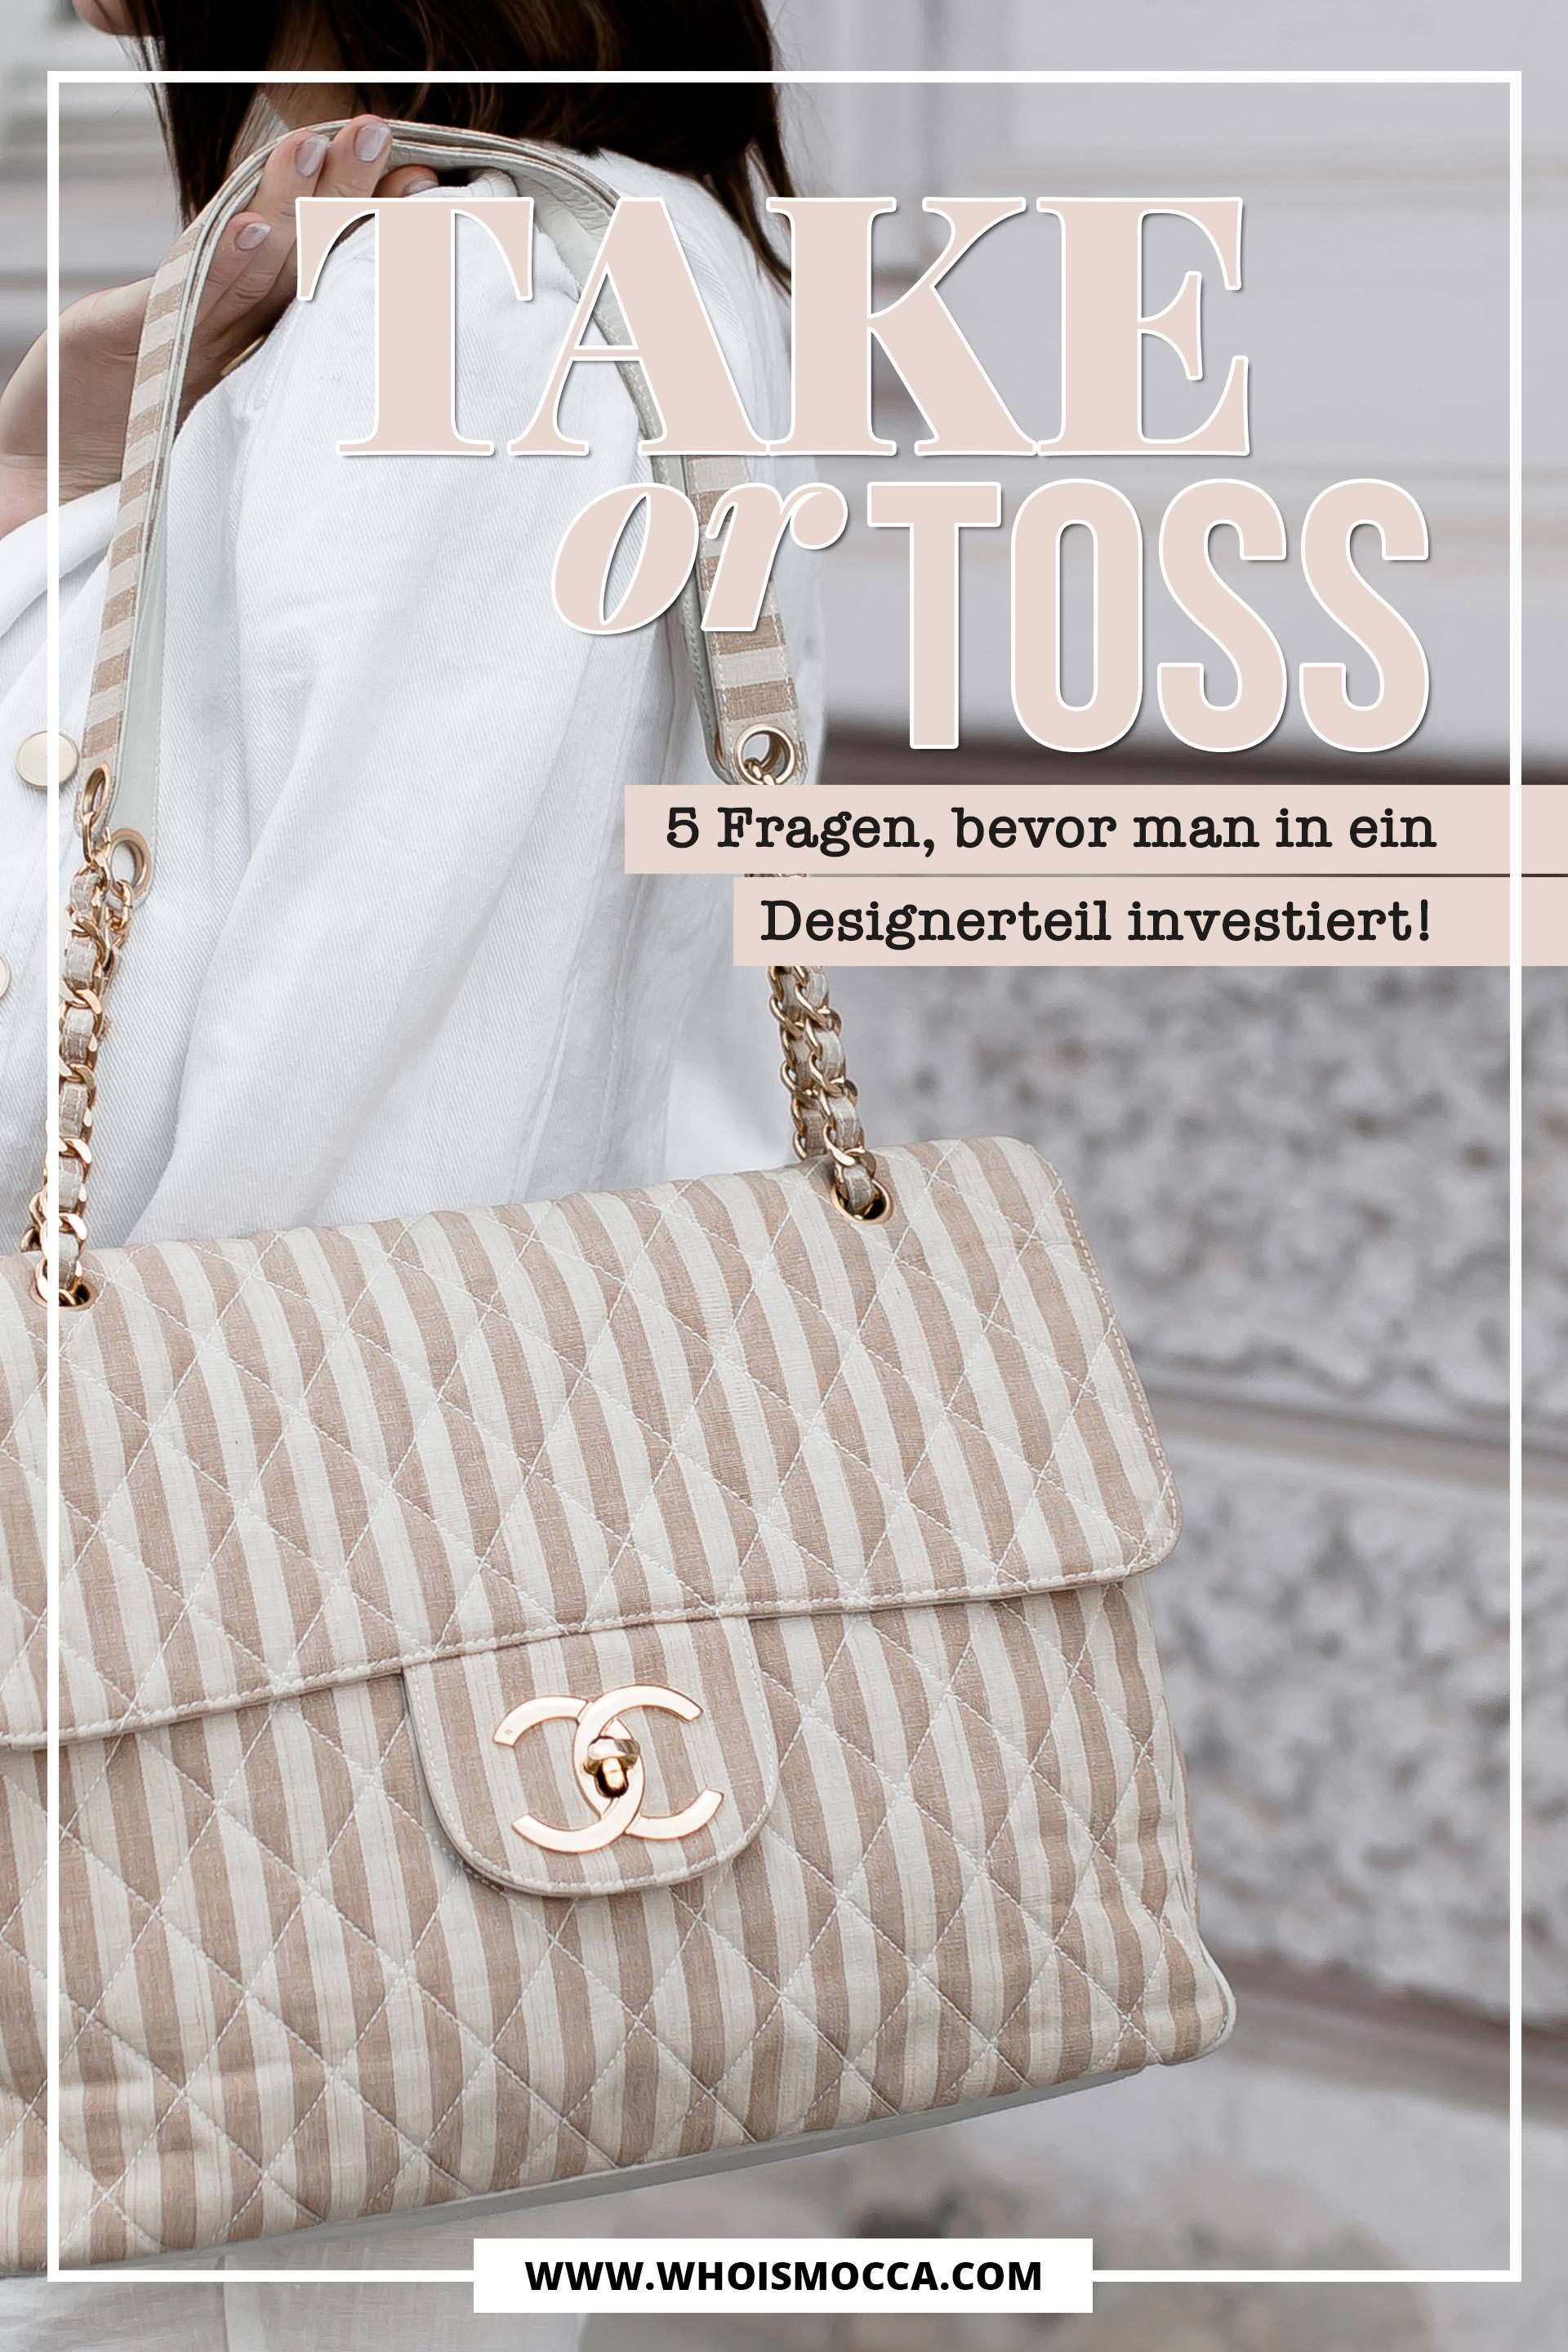 Take or Toss? 5 Fragen, bevor man in ein Designerteil